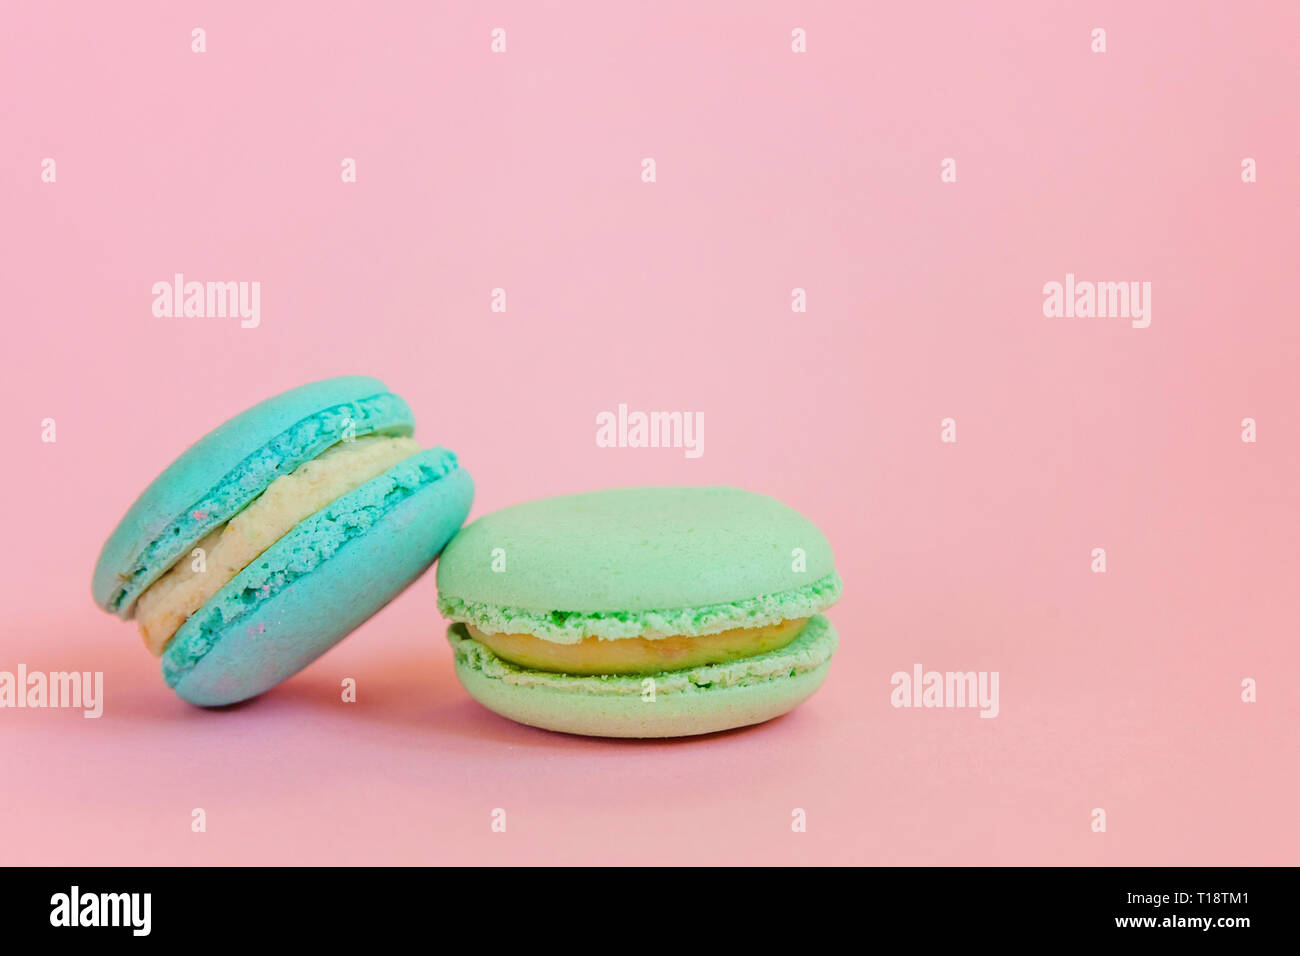 Sweet Almond Colorful Unicorn Blue Green Macaron Or Macaroon Dessert Cake Isolated On Trendy Pink Pastel Background French Sweet Cookie Minimal Food Stock Photo Alamy